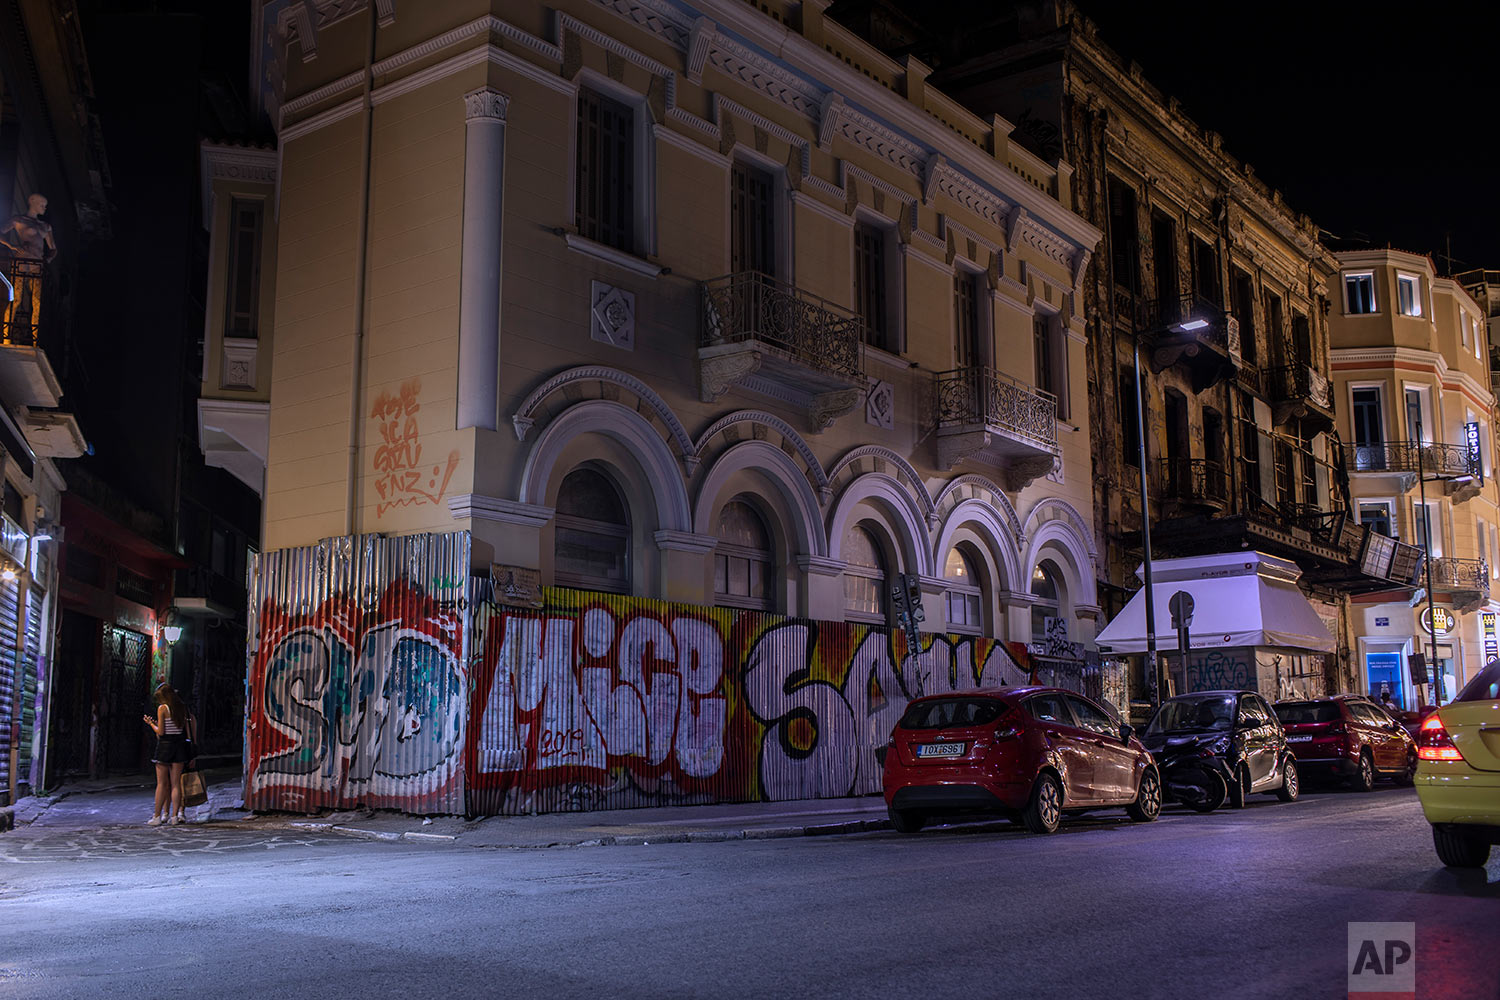 The fence of a renovated building and part of the wall are defaced with graffiti in Monastiraki district, central Athens, July 7, 2019. (AP Photo/Petros Giannakouris)